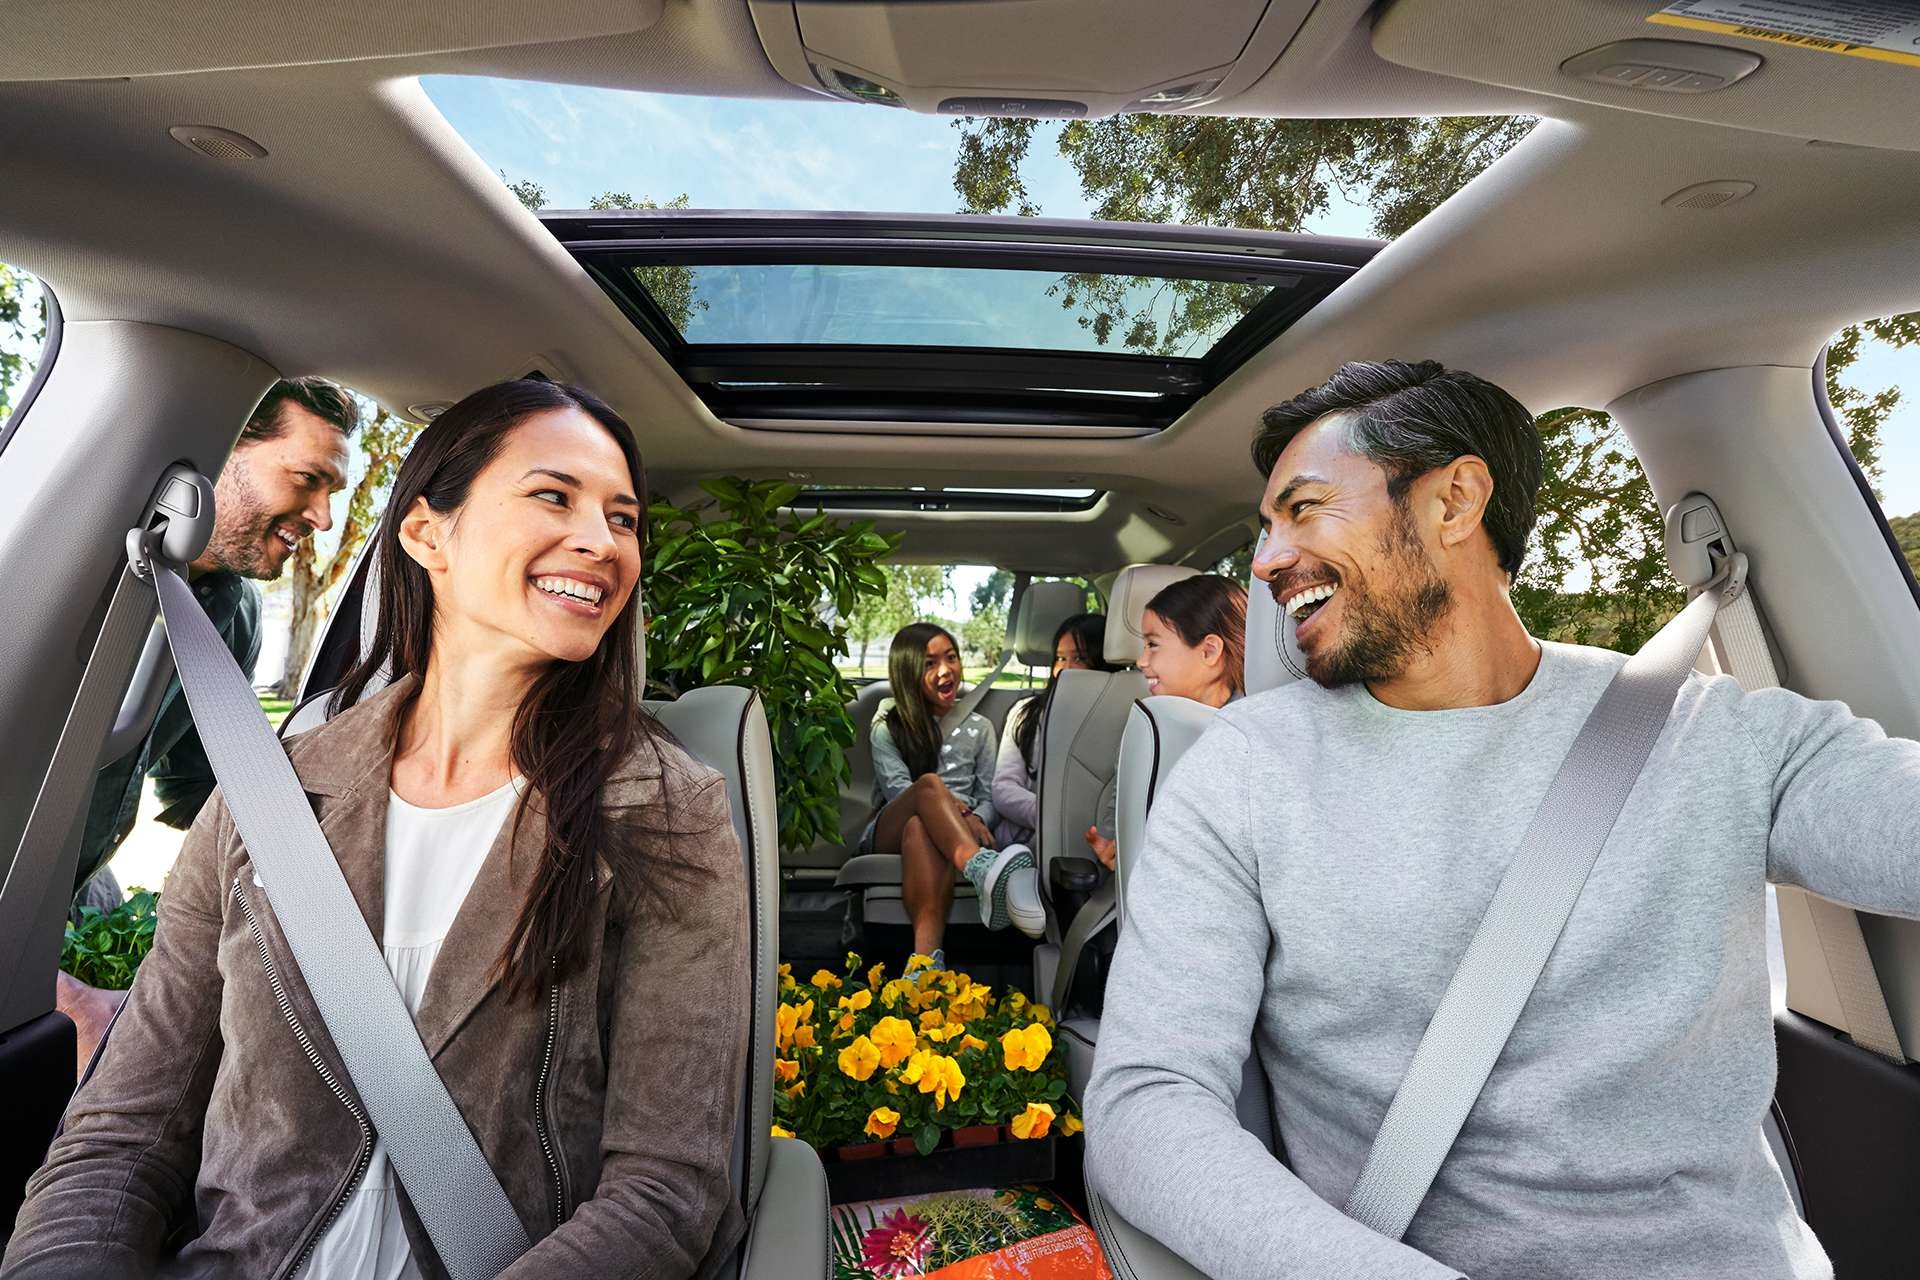 2019 Chrysler Pacifica people in car laughing